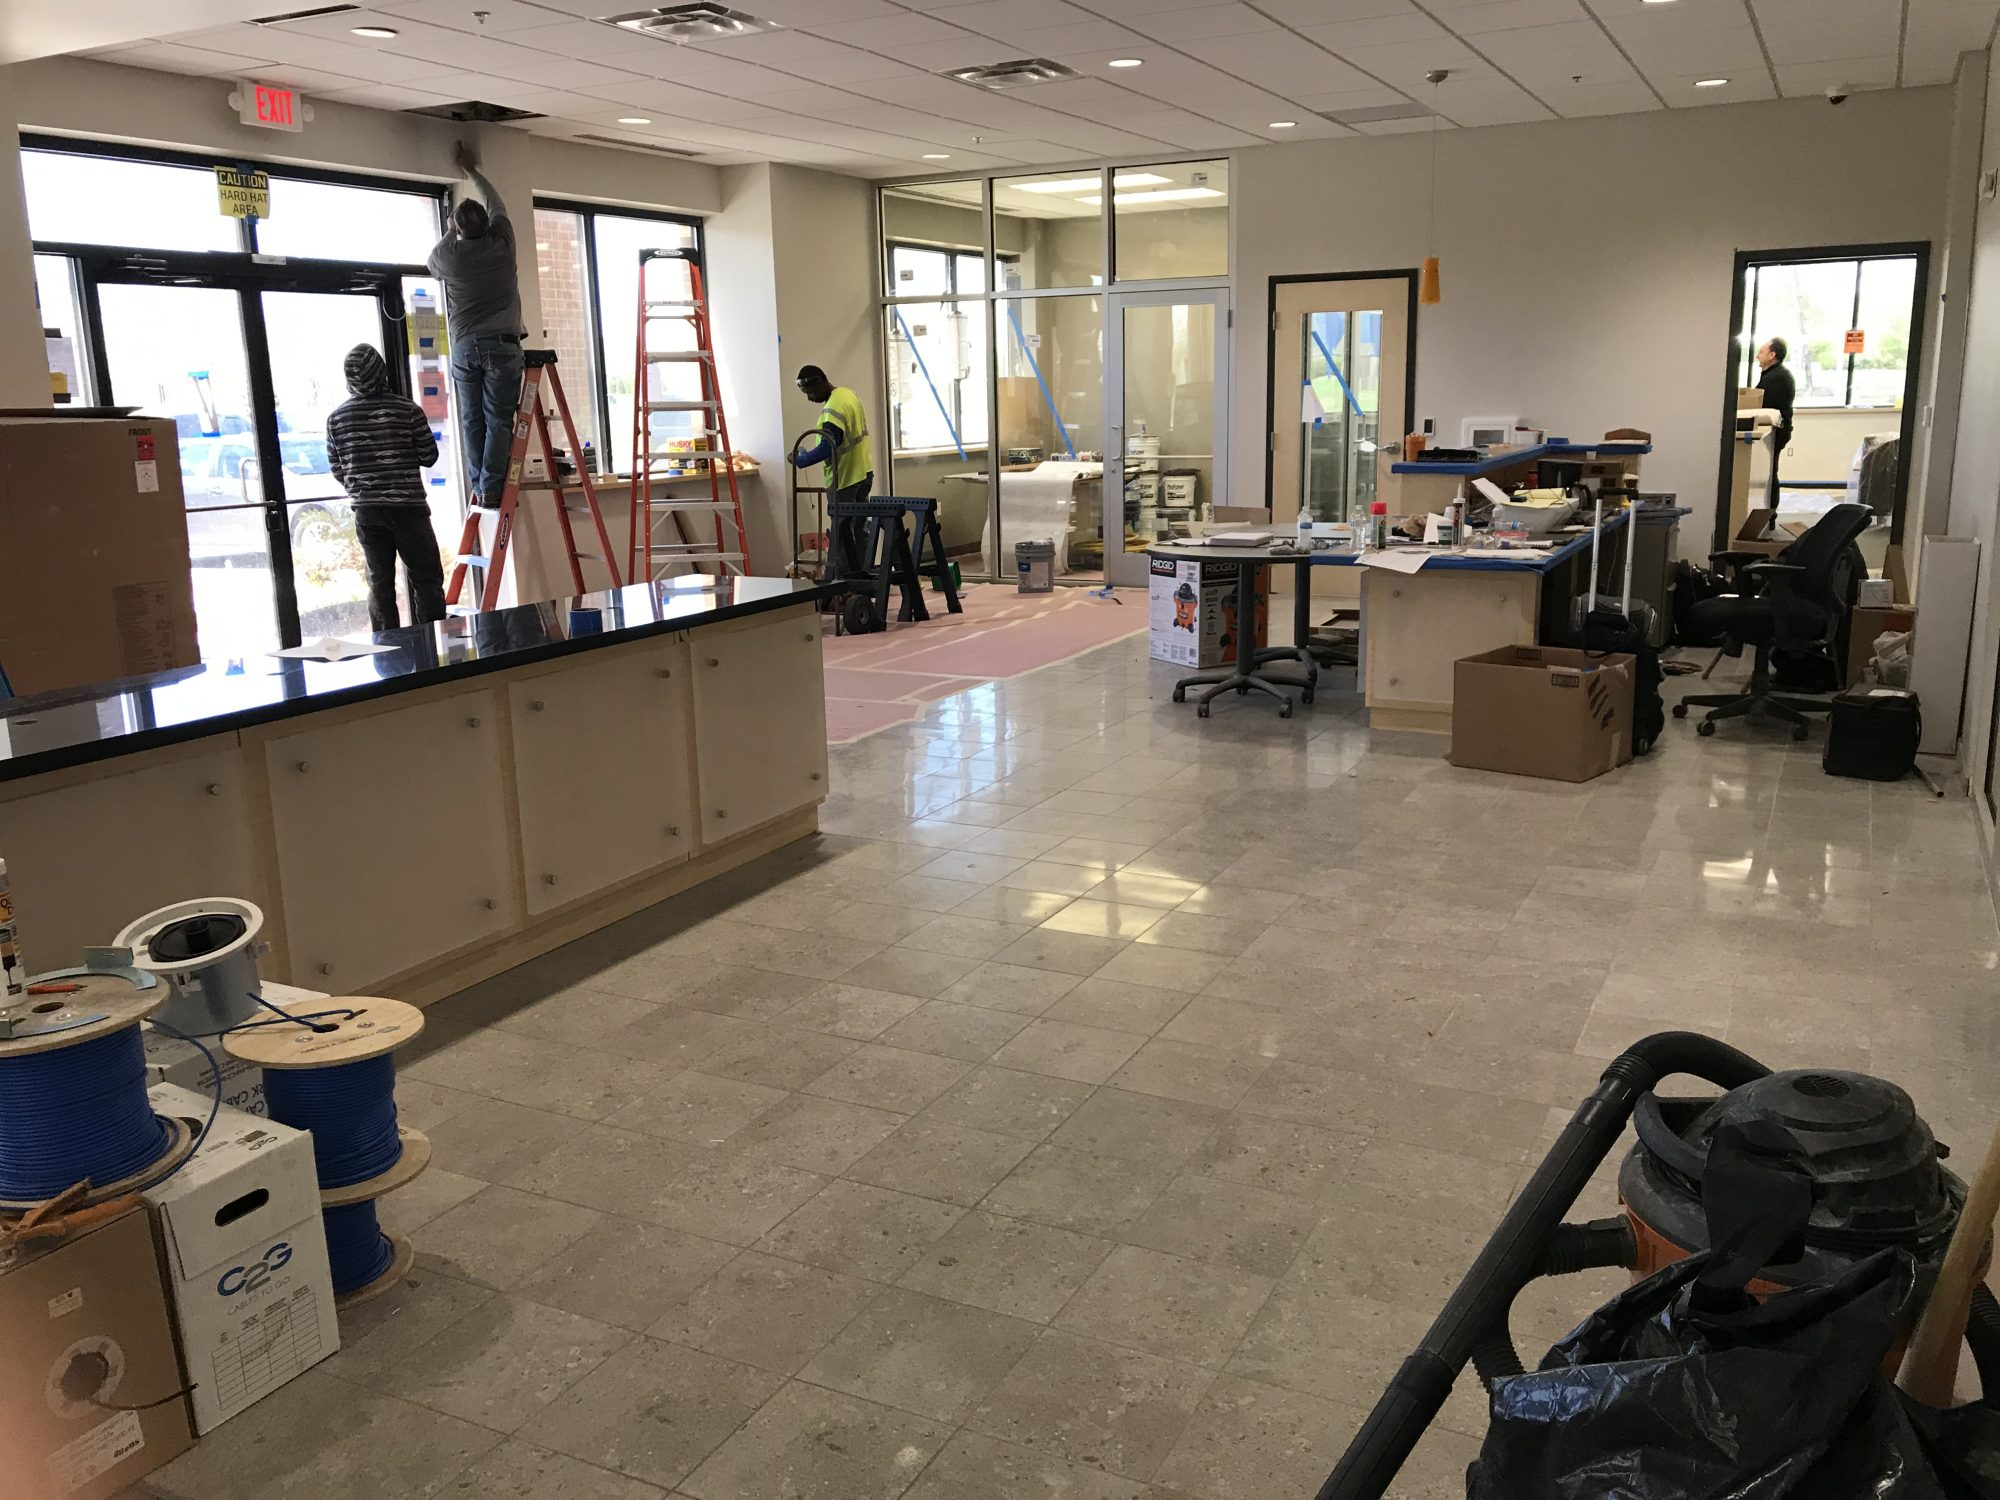 Summit Building Services, Inc. completed the post construction cleaning for Englewood Construction